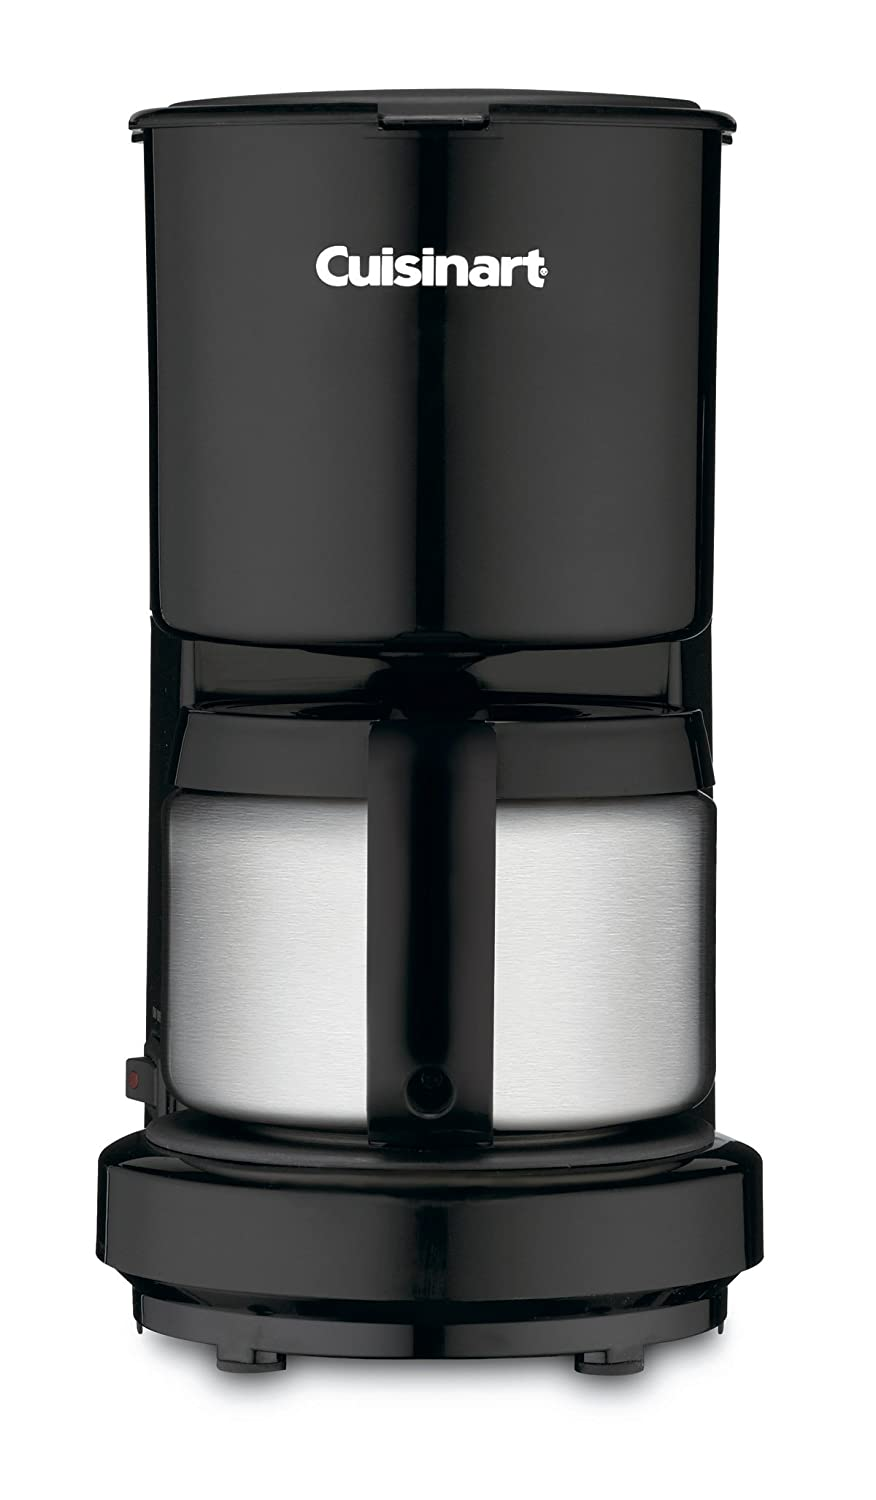 CuisinArt DCC-450BK: The 4 Cup Coffee Maker to Prevent Wastage